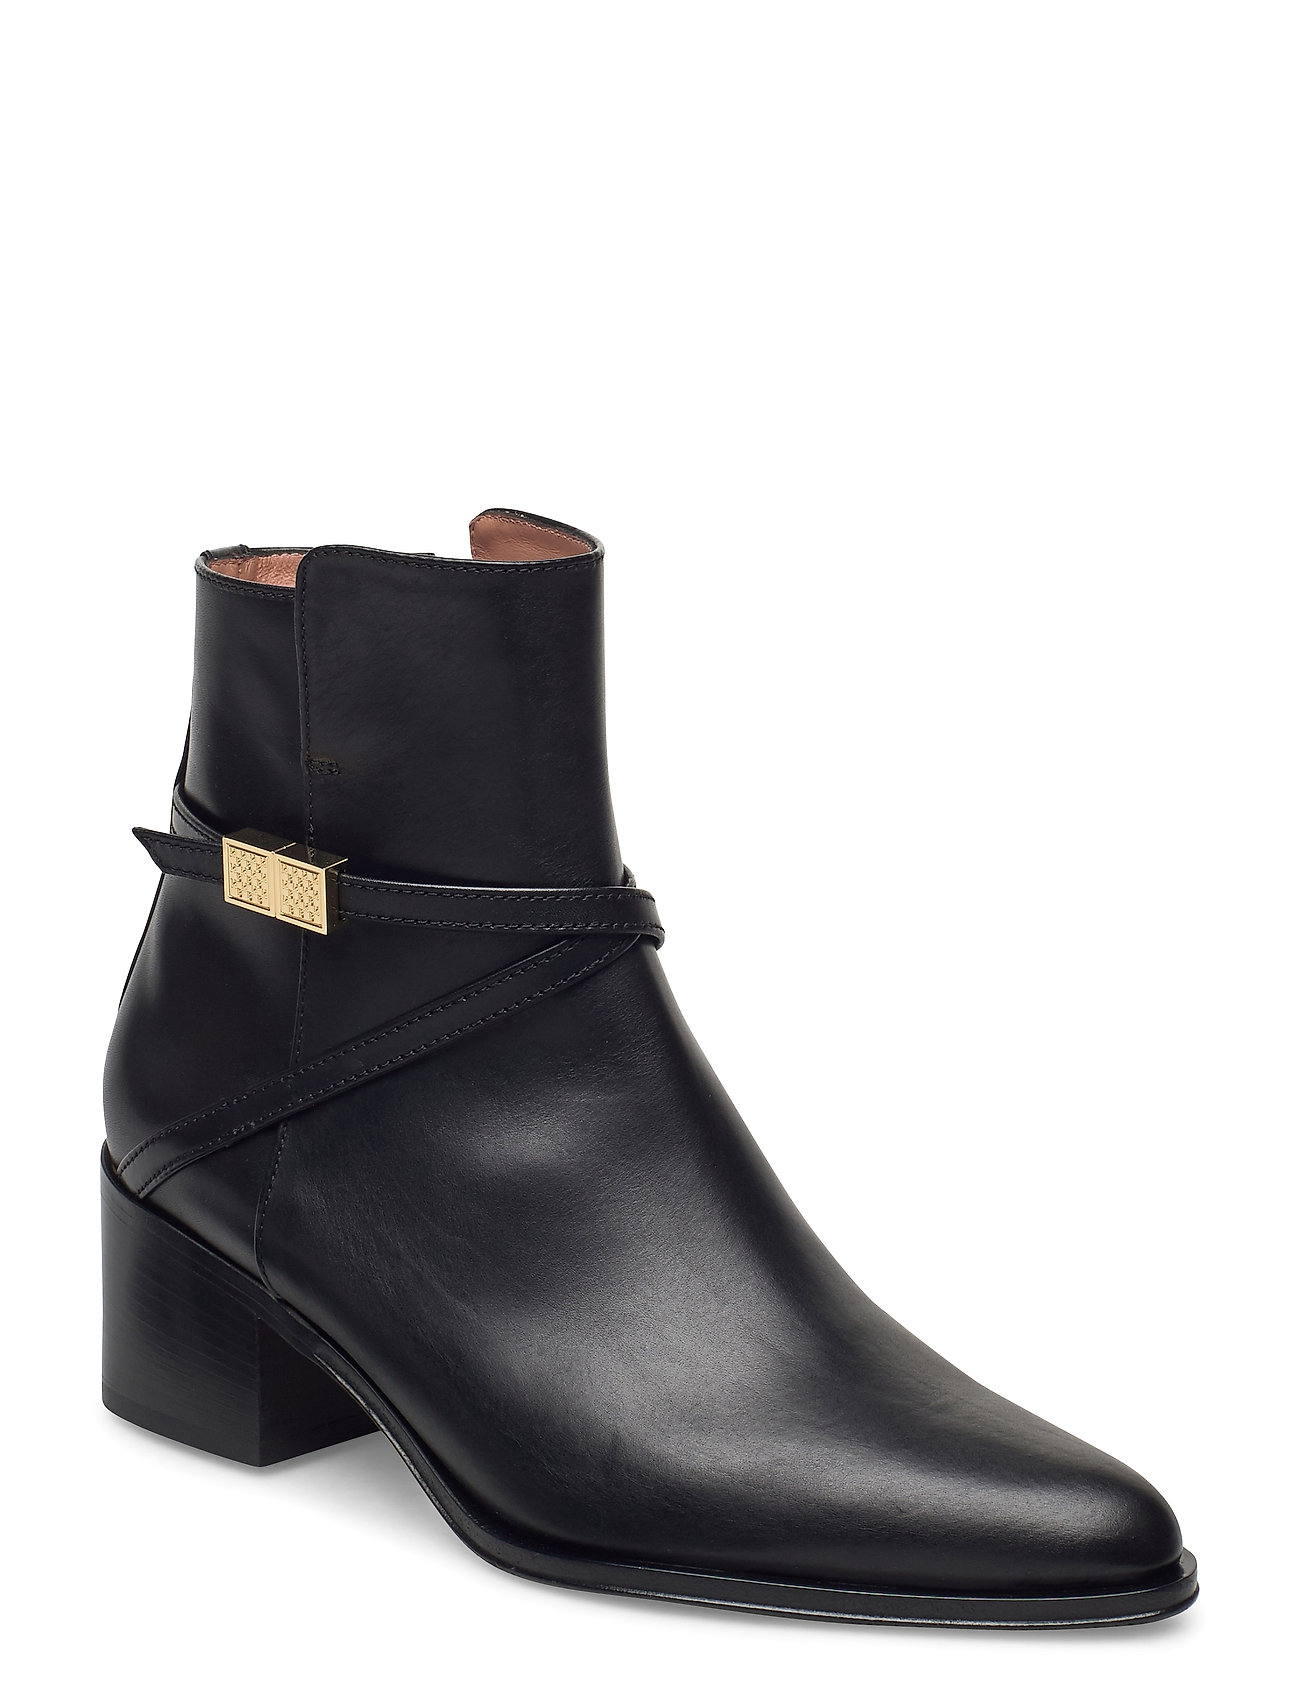 Image of Carine Bootie 50-C Shoes Boots Ankle Boots Ankle Boot - Heel Sort BOSS (3441399937)